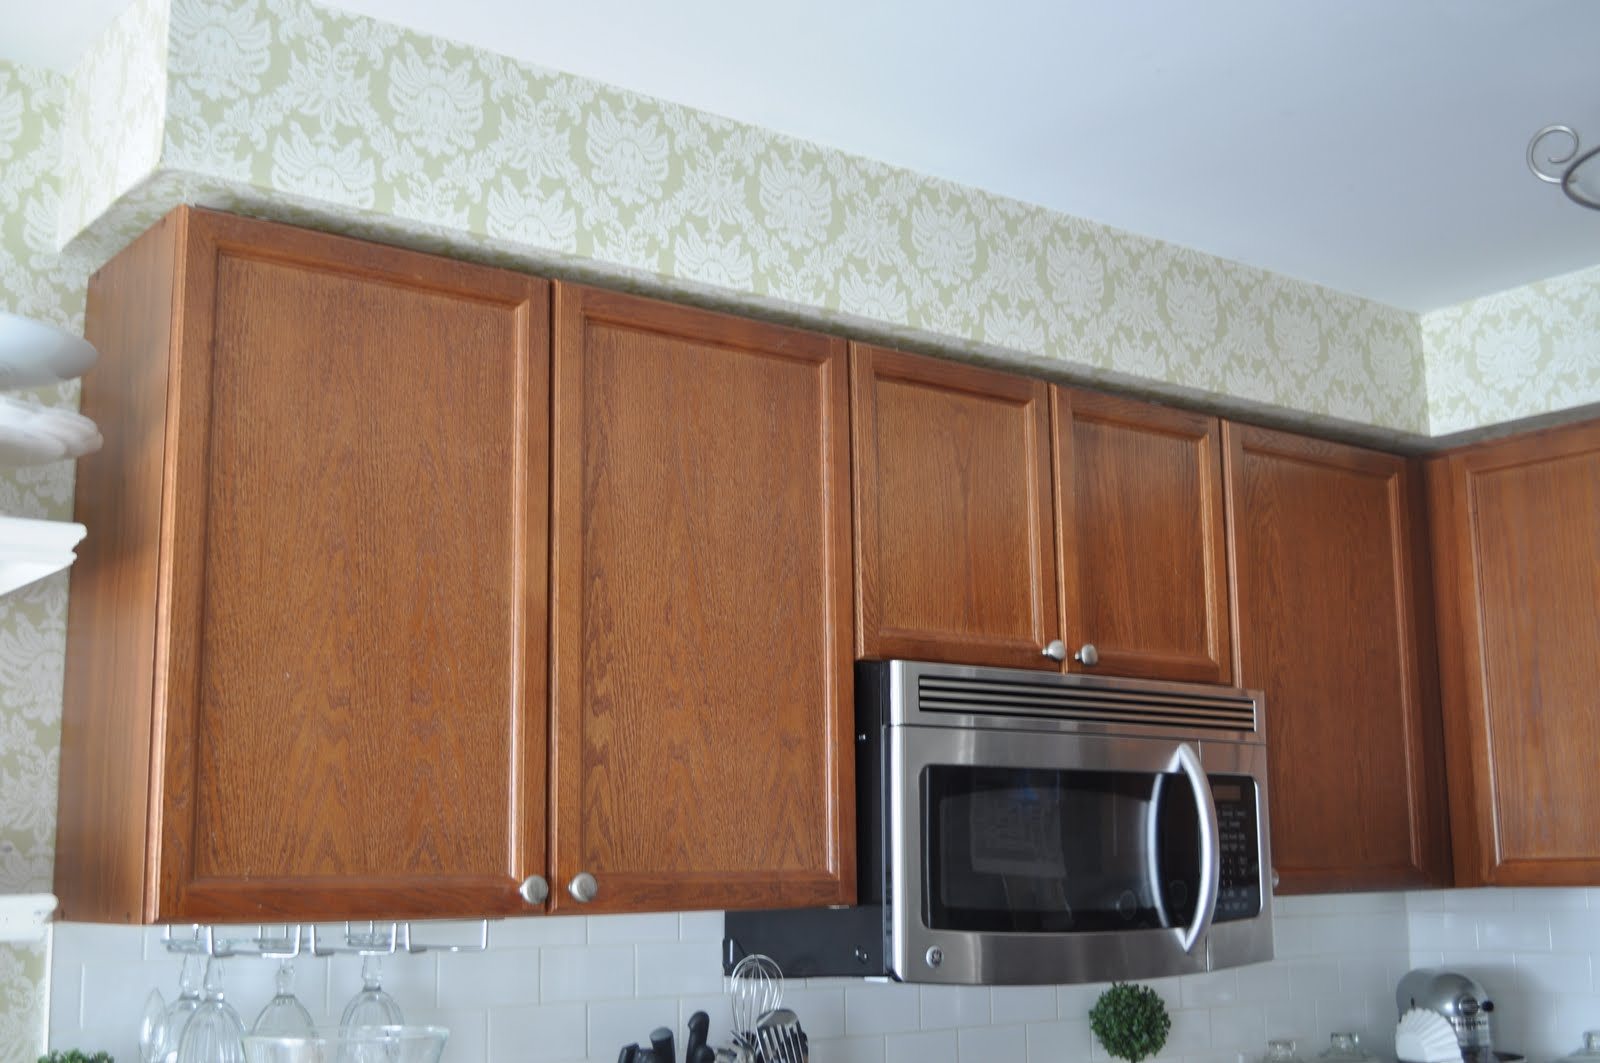 Oak Kitchen Cabinets Before and After Restored